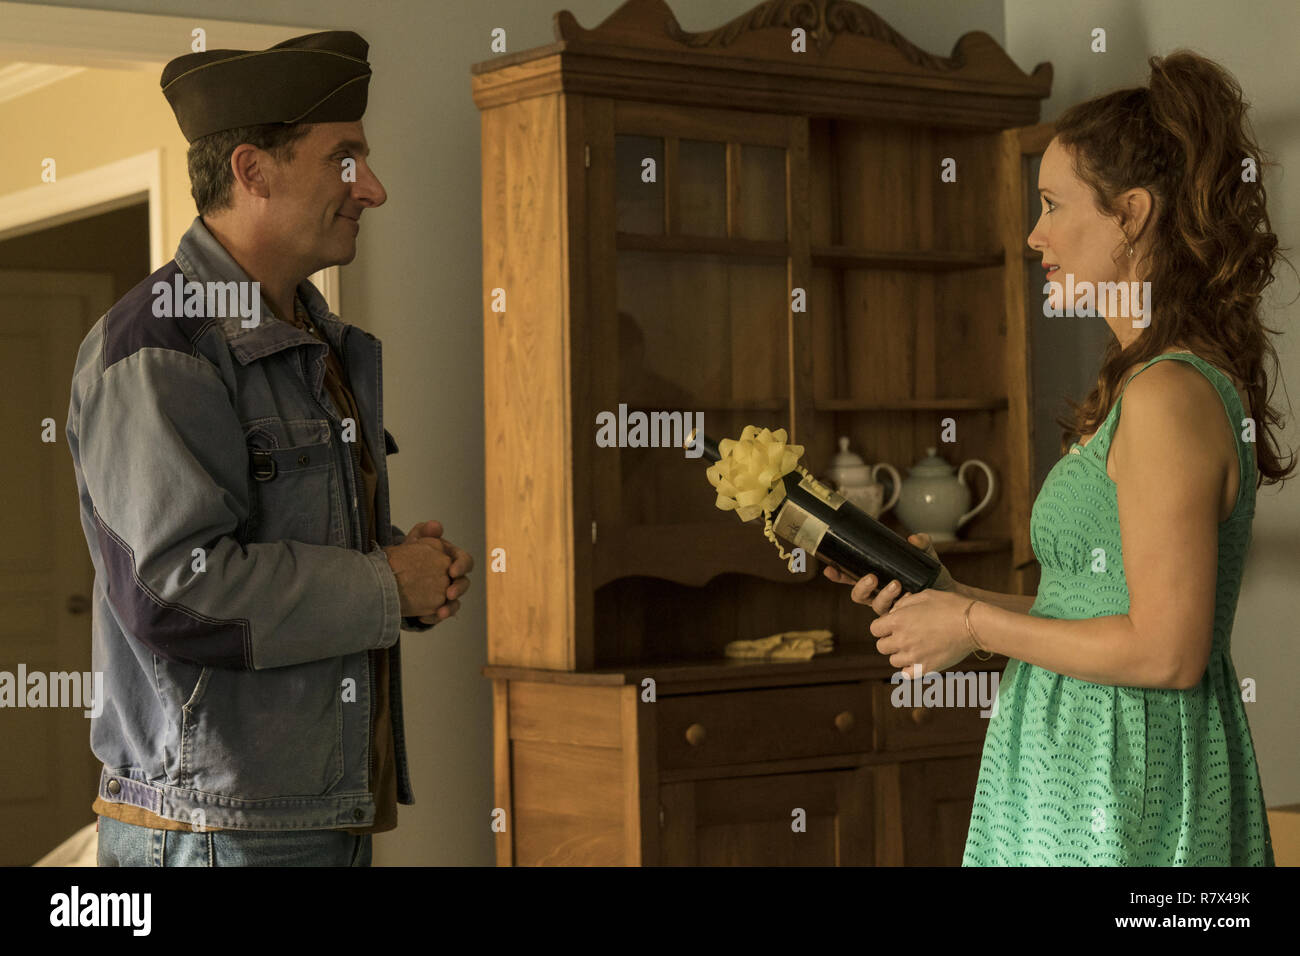 Steve Carell as Mark Hogancamp and Leslie Mann as Mark's new neighbor, Nicol, in 'Welcome to Marwen,' directed by Robert Zemeckis.  Photo Credit: Universal Pictures and Storyteller Distribution Co., LLC. / The Hollywood Archive - Stock Image